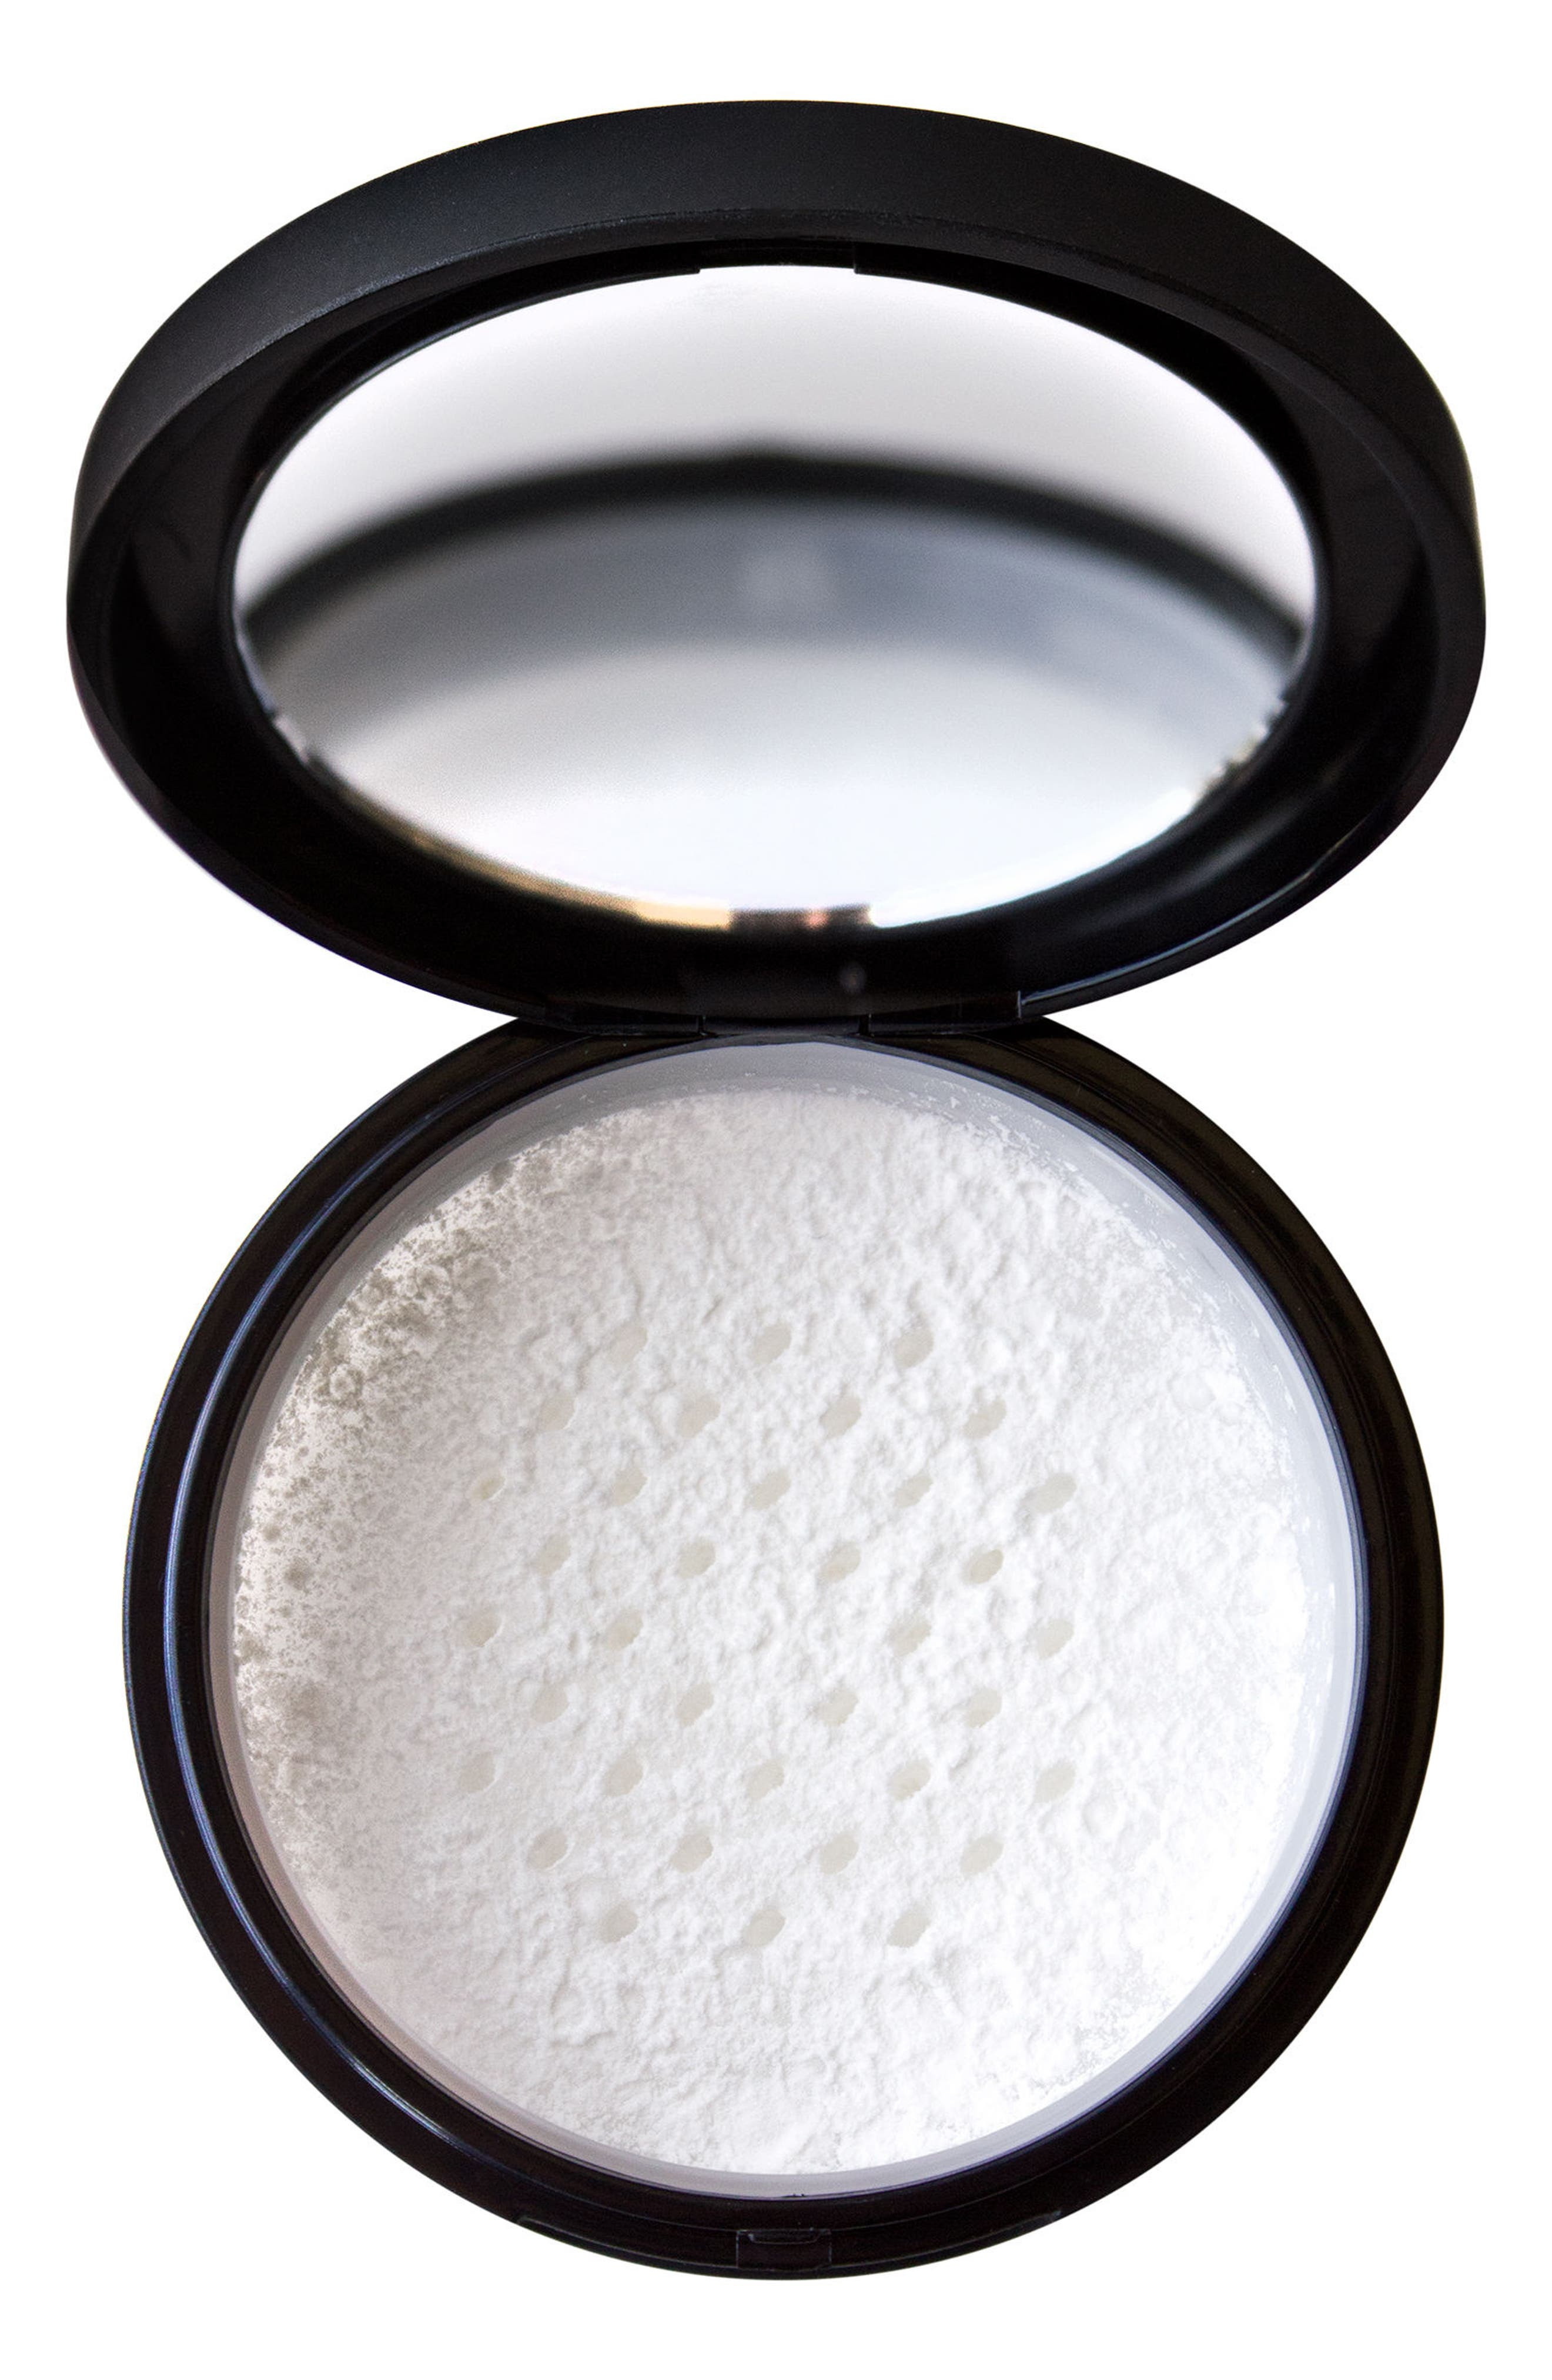 PRO Blurring Translucent Loose Powder,                             Main thumbnail 1, color,                             No Color